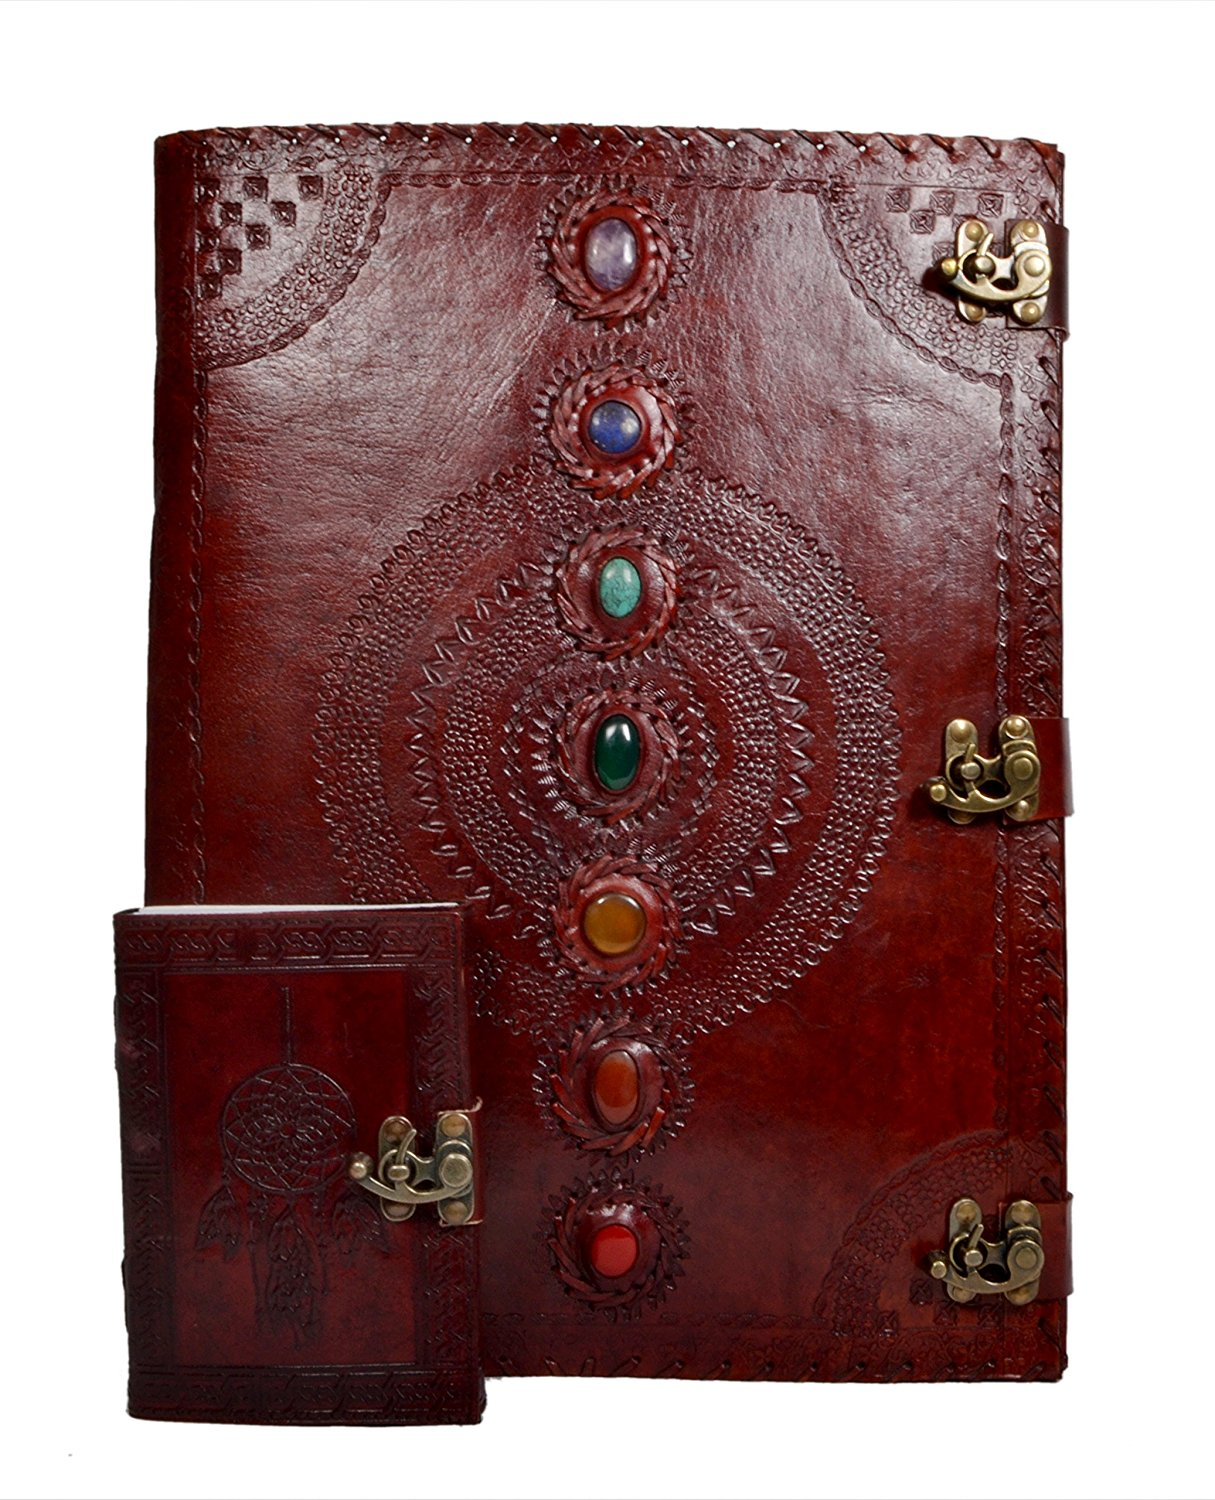 New Leather Journal Seven Stone Medieval Stone Embossed Diary with Dream Catcher Embossed Handmade Notebook Travel For Men & Women Antique Quality Paper Perfect Notebook